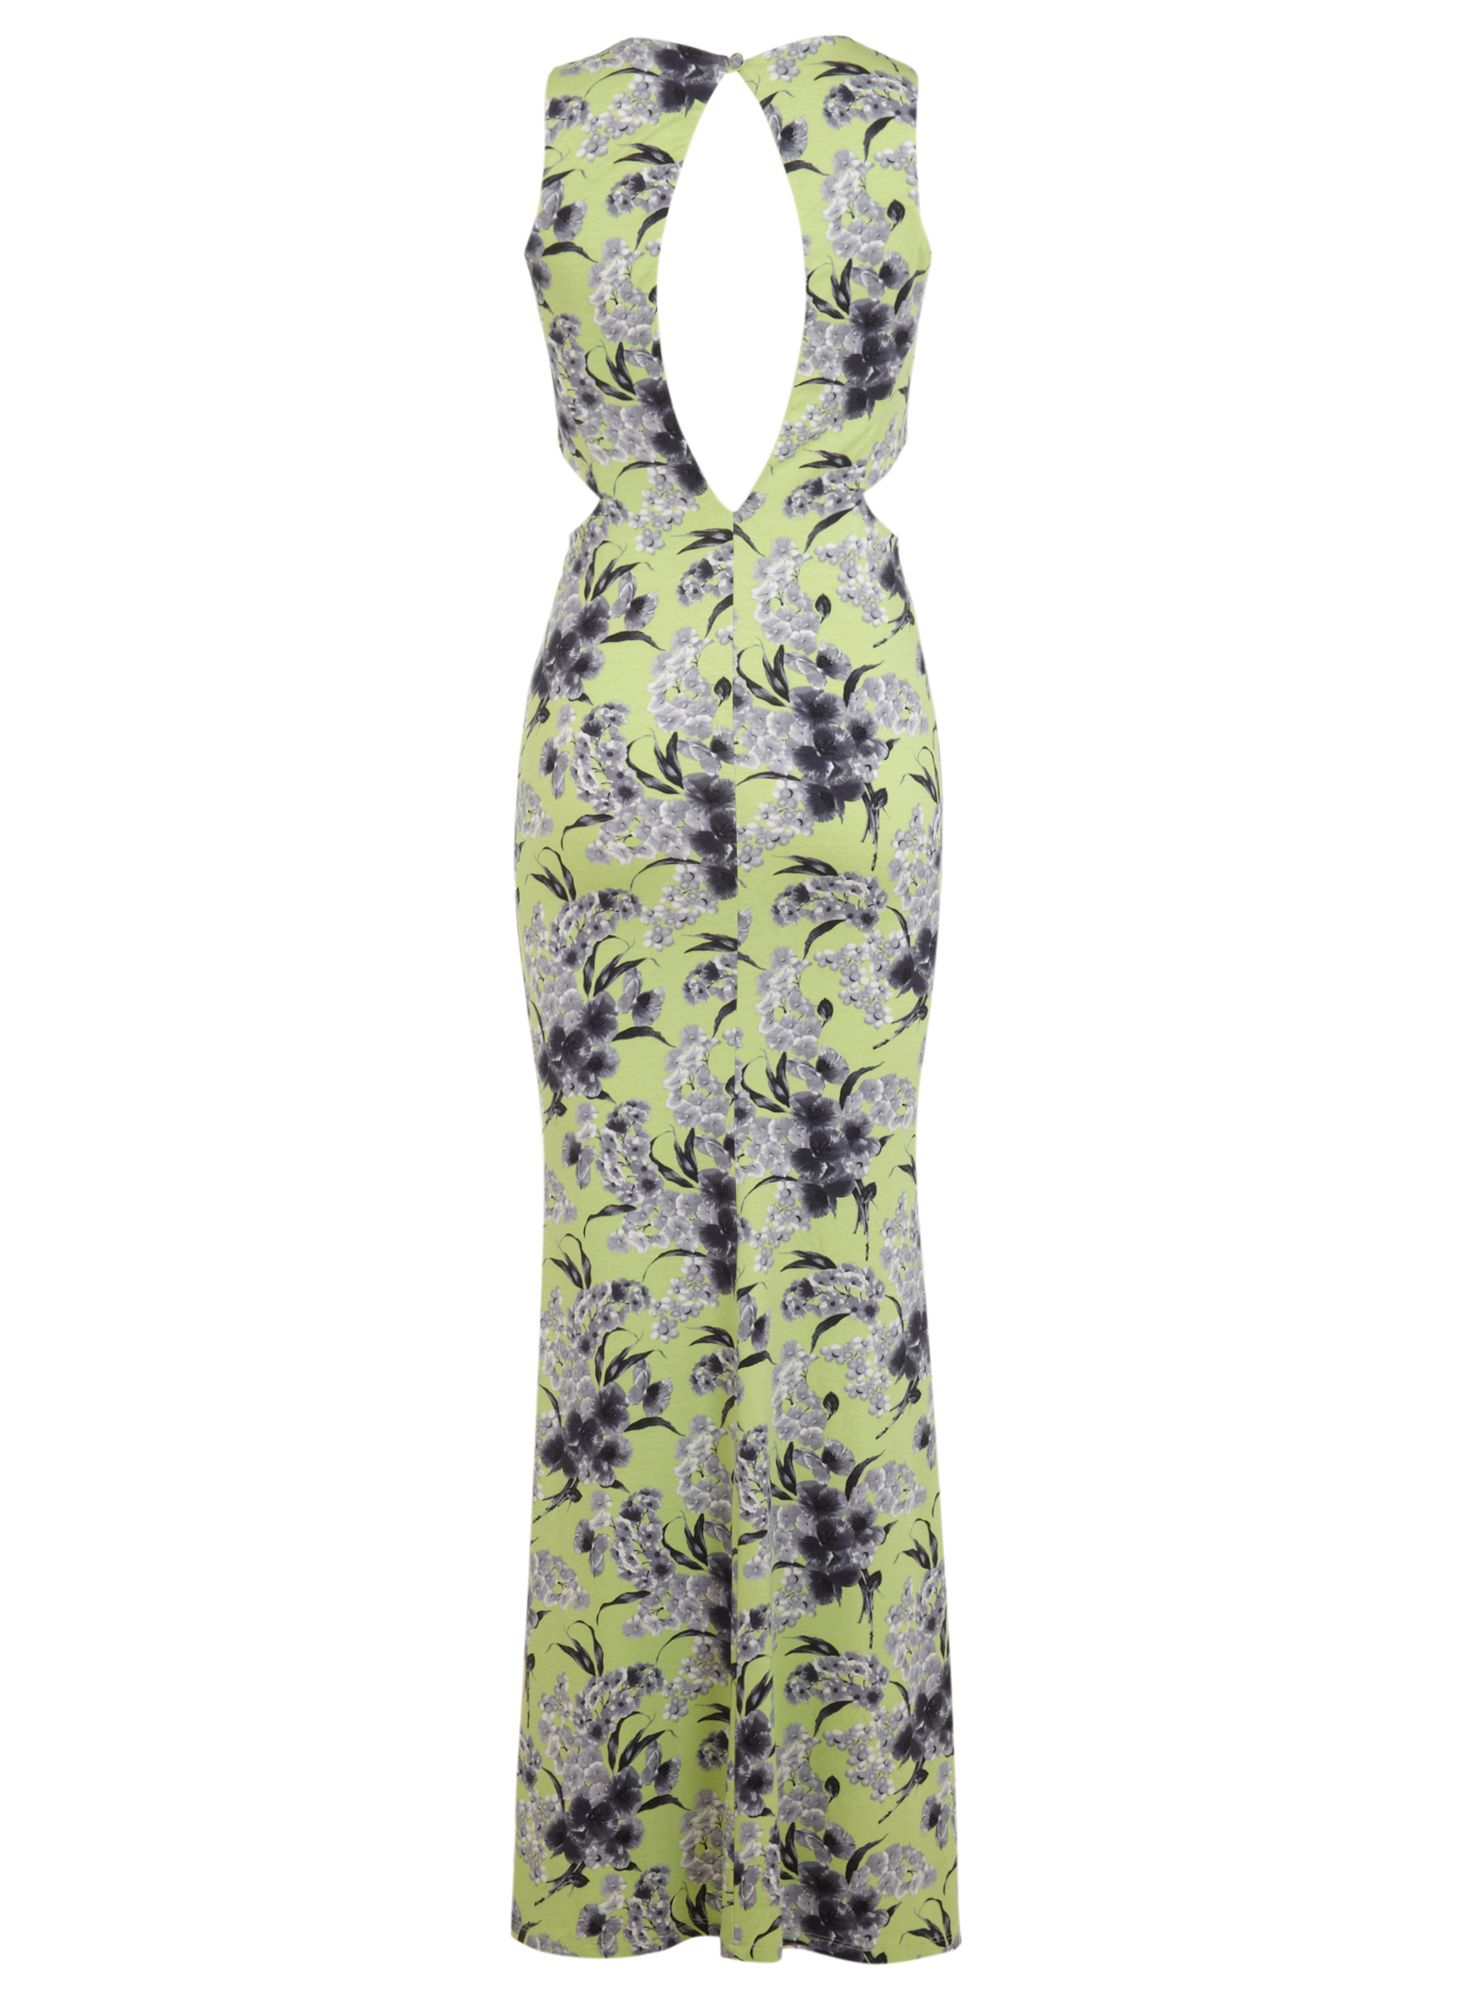 Miss selfridge Lime Floral Maxi Dress in Green - Lyst